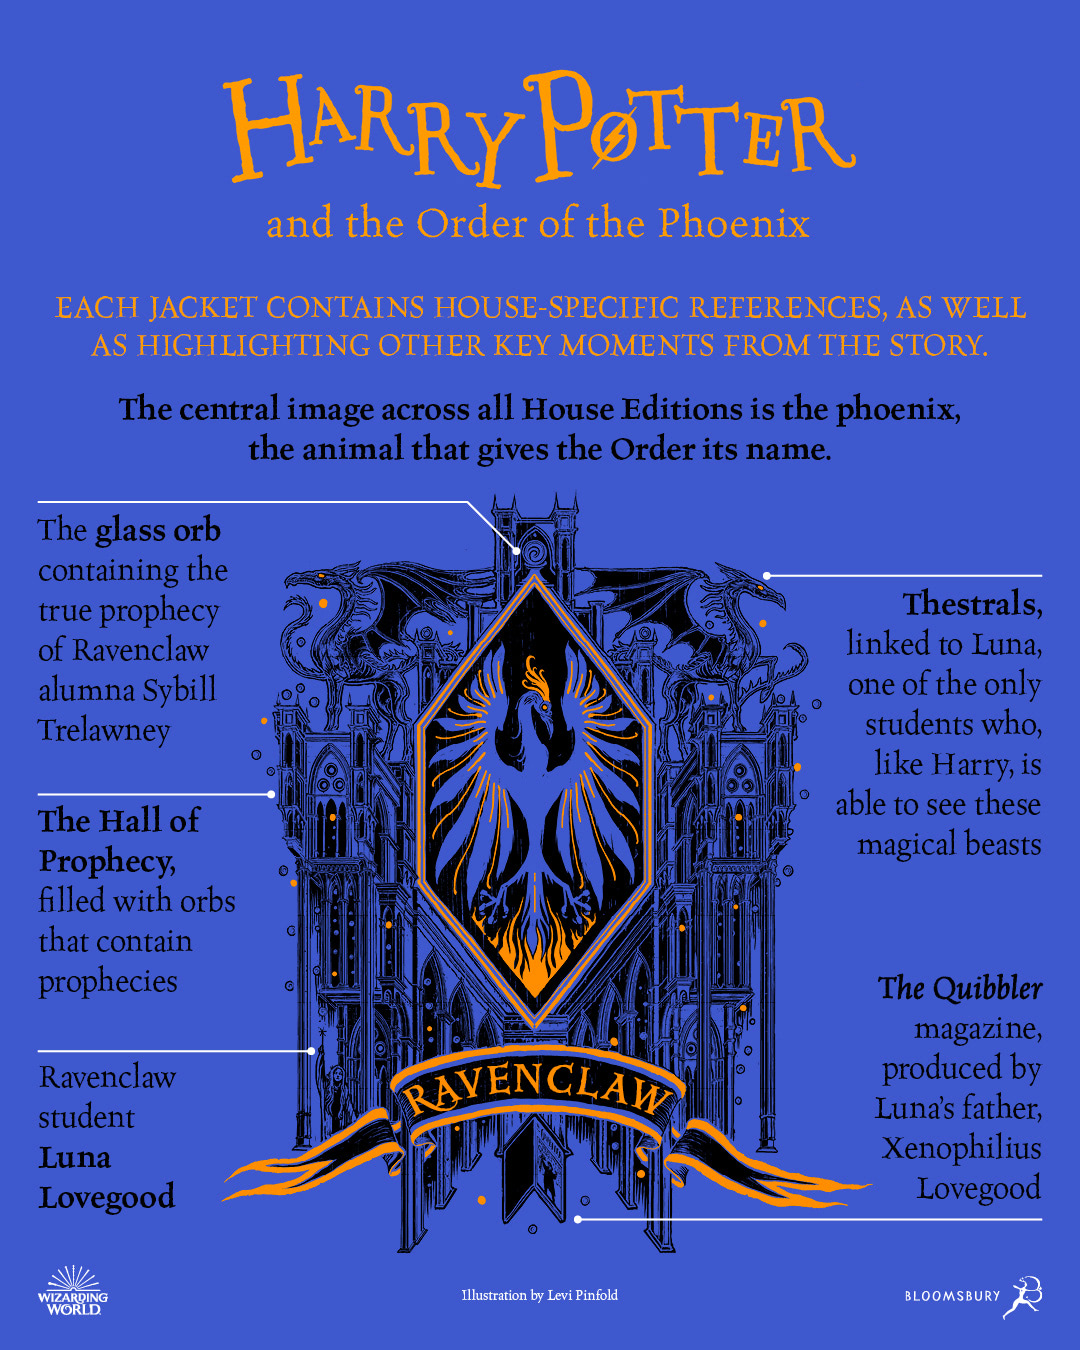 'Order of the Phoenix' house edition cover artwork chart (Ravenclaw)